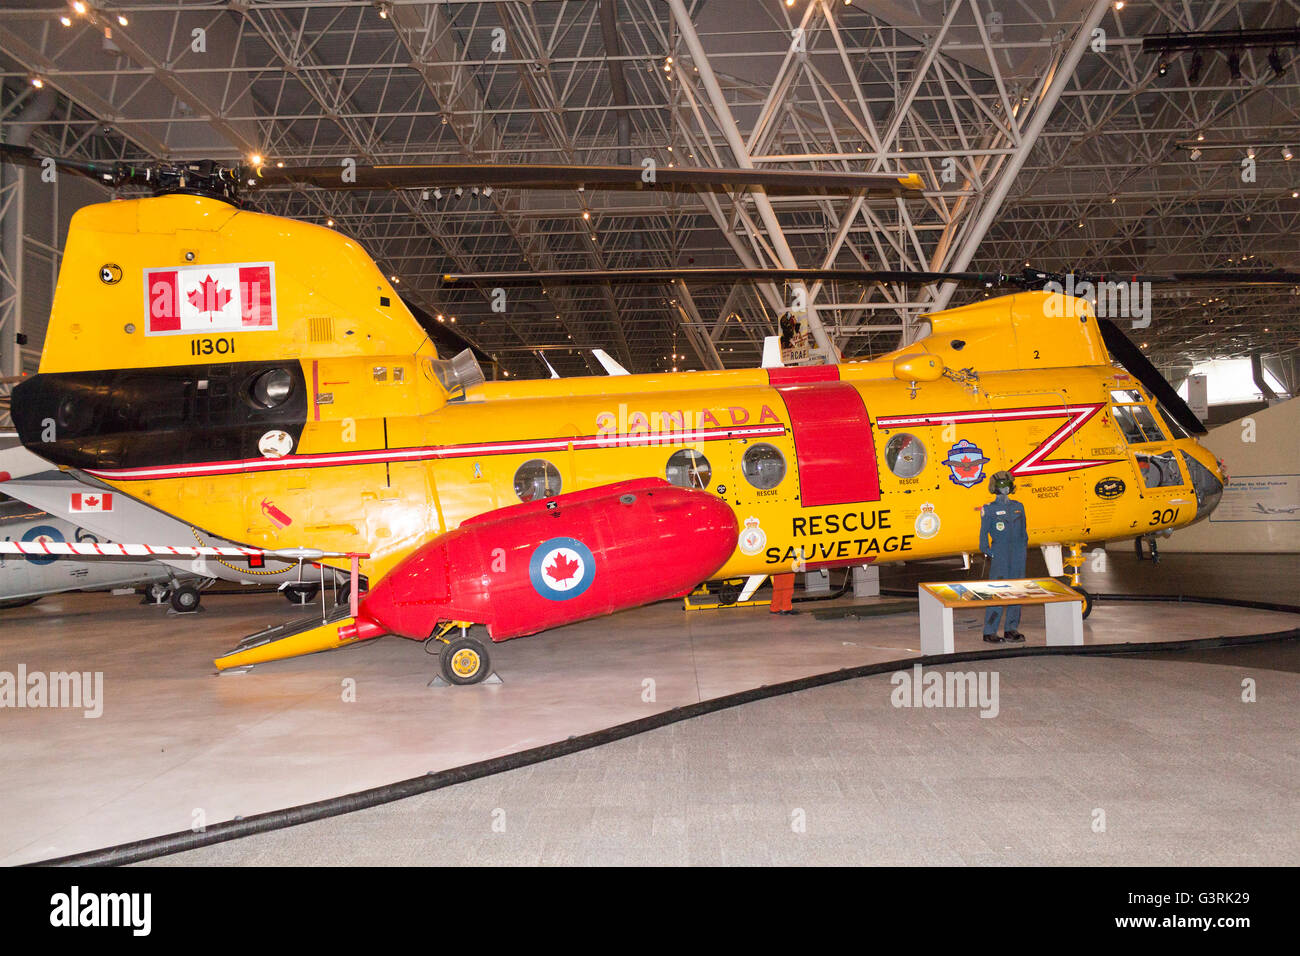 Boeing CH-113 Labrador Rescue Helicopter on display at the Canadian Aviation and Space Museum in Ottawa, Ontario, - Stock Image